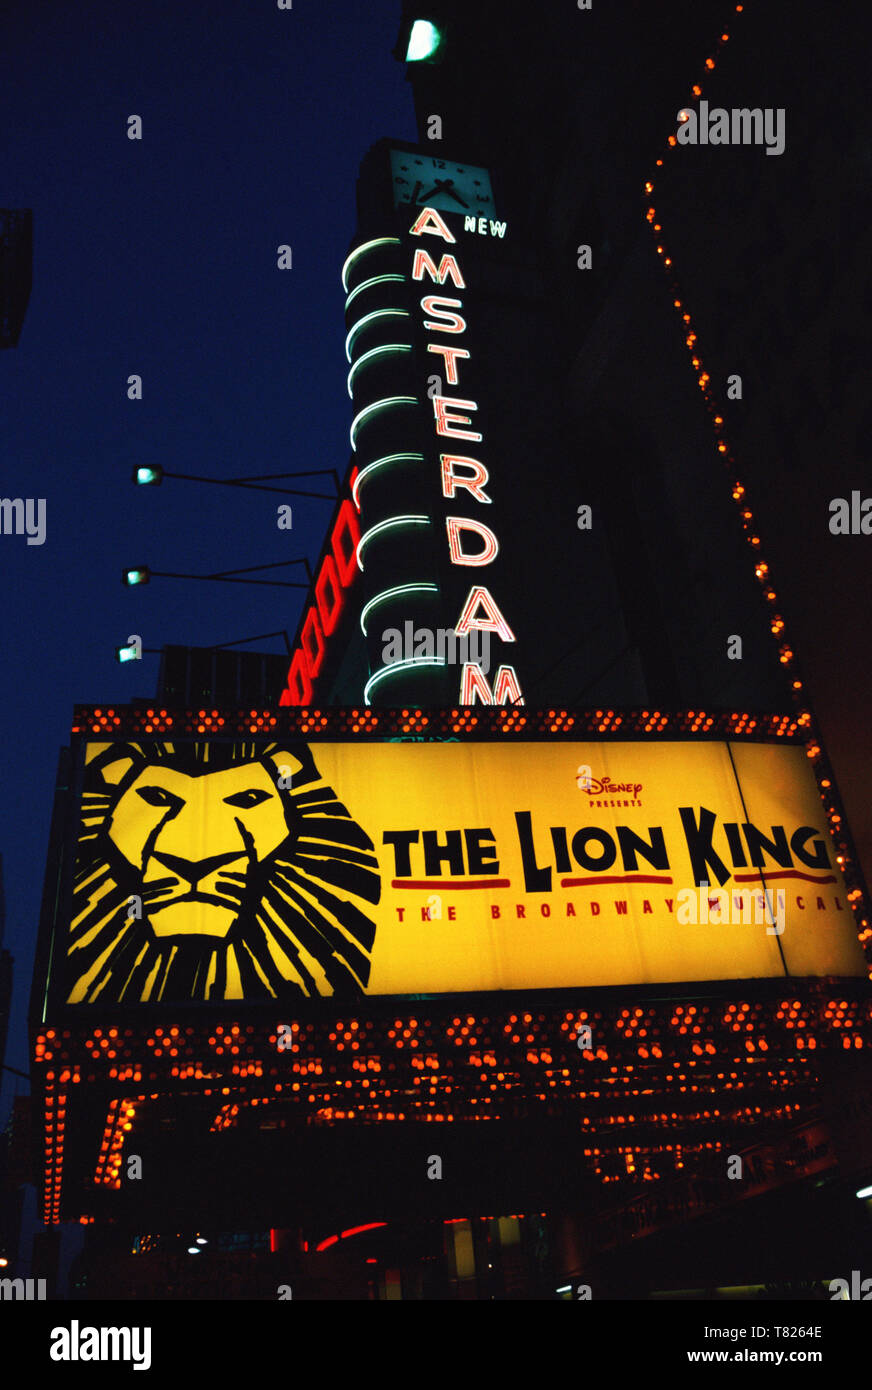 1998 Lion King New Amsterdam Theater Marquee on West 42nd Street, NYC, USA - Stock Image